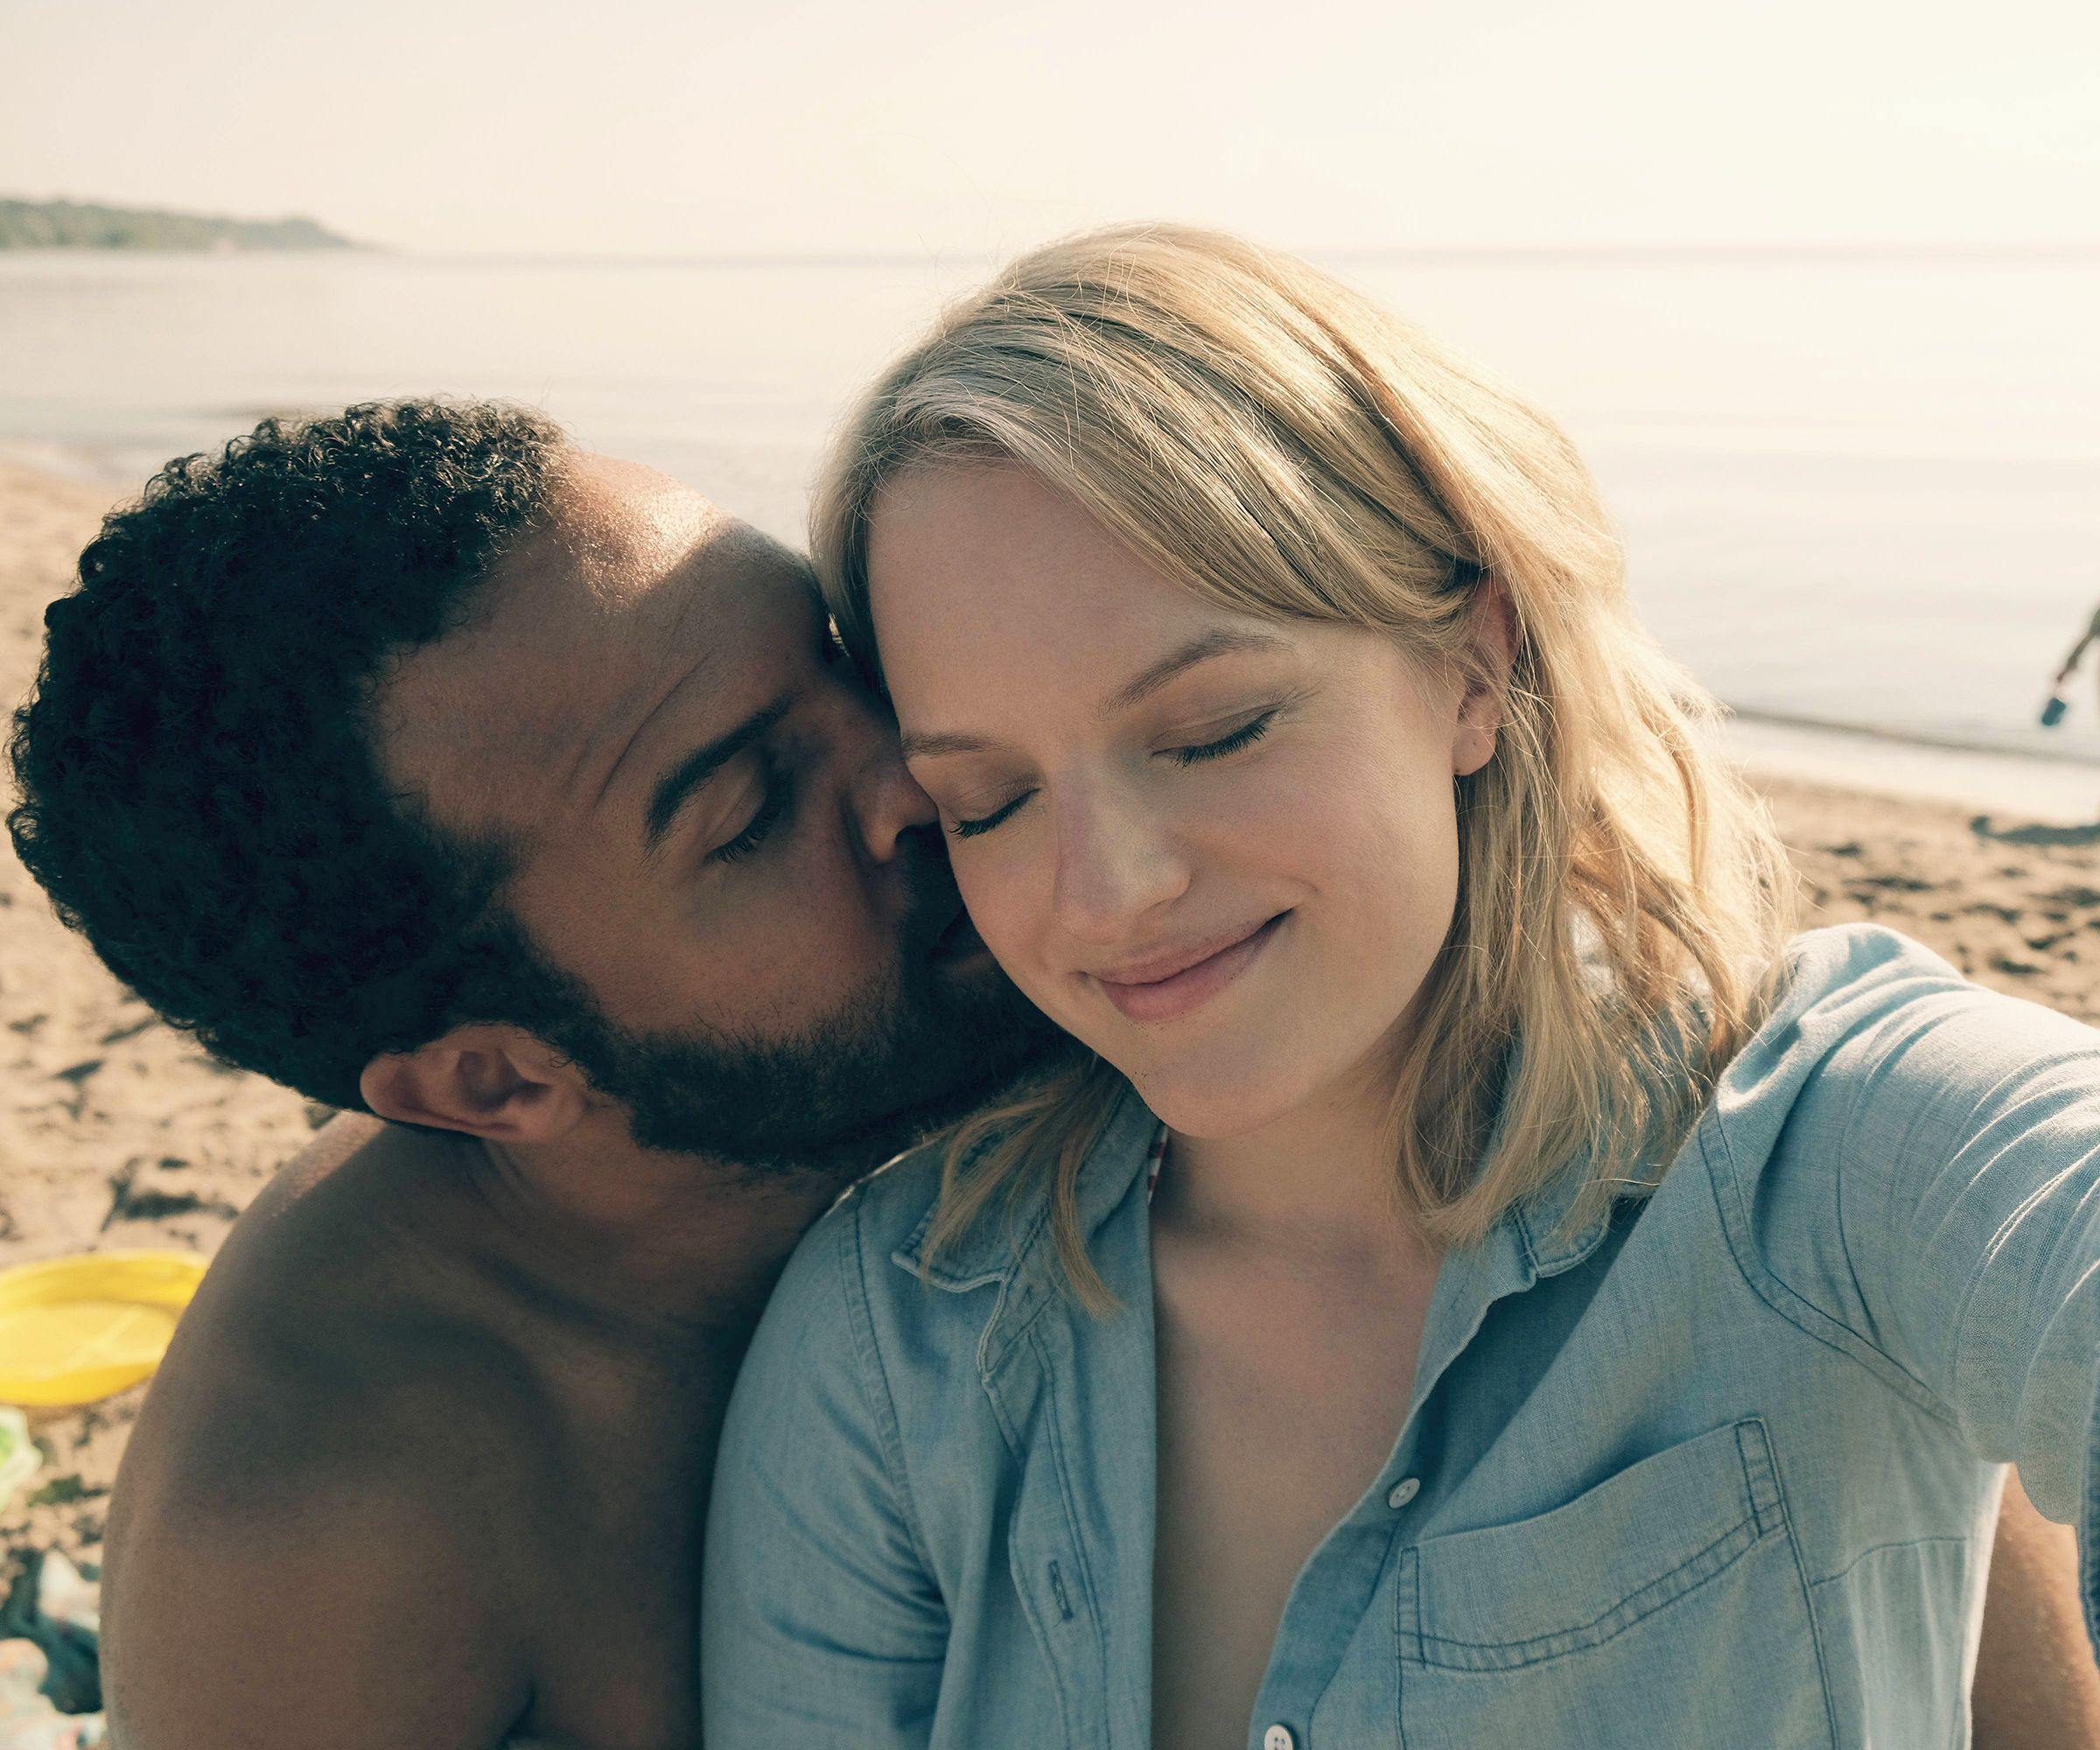 Interracial movies filmed in a jungle